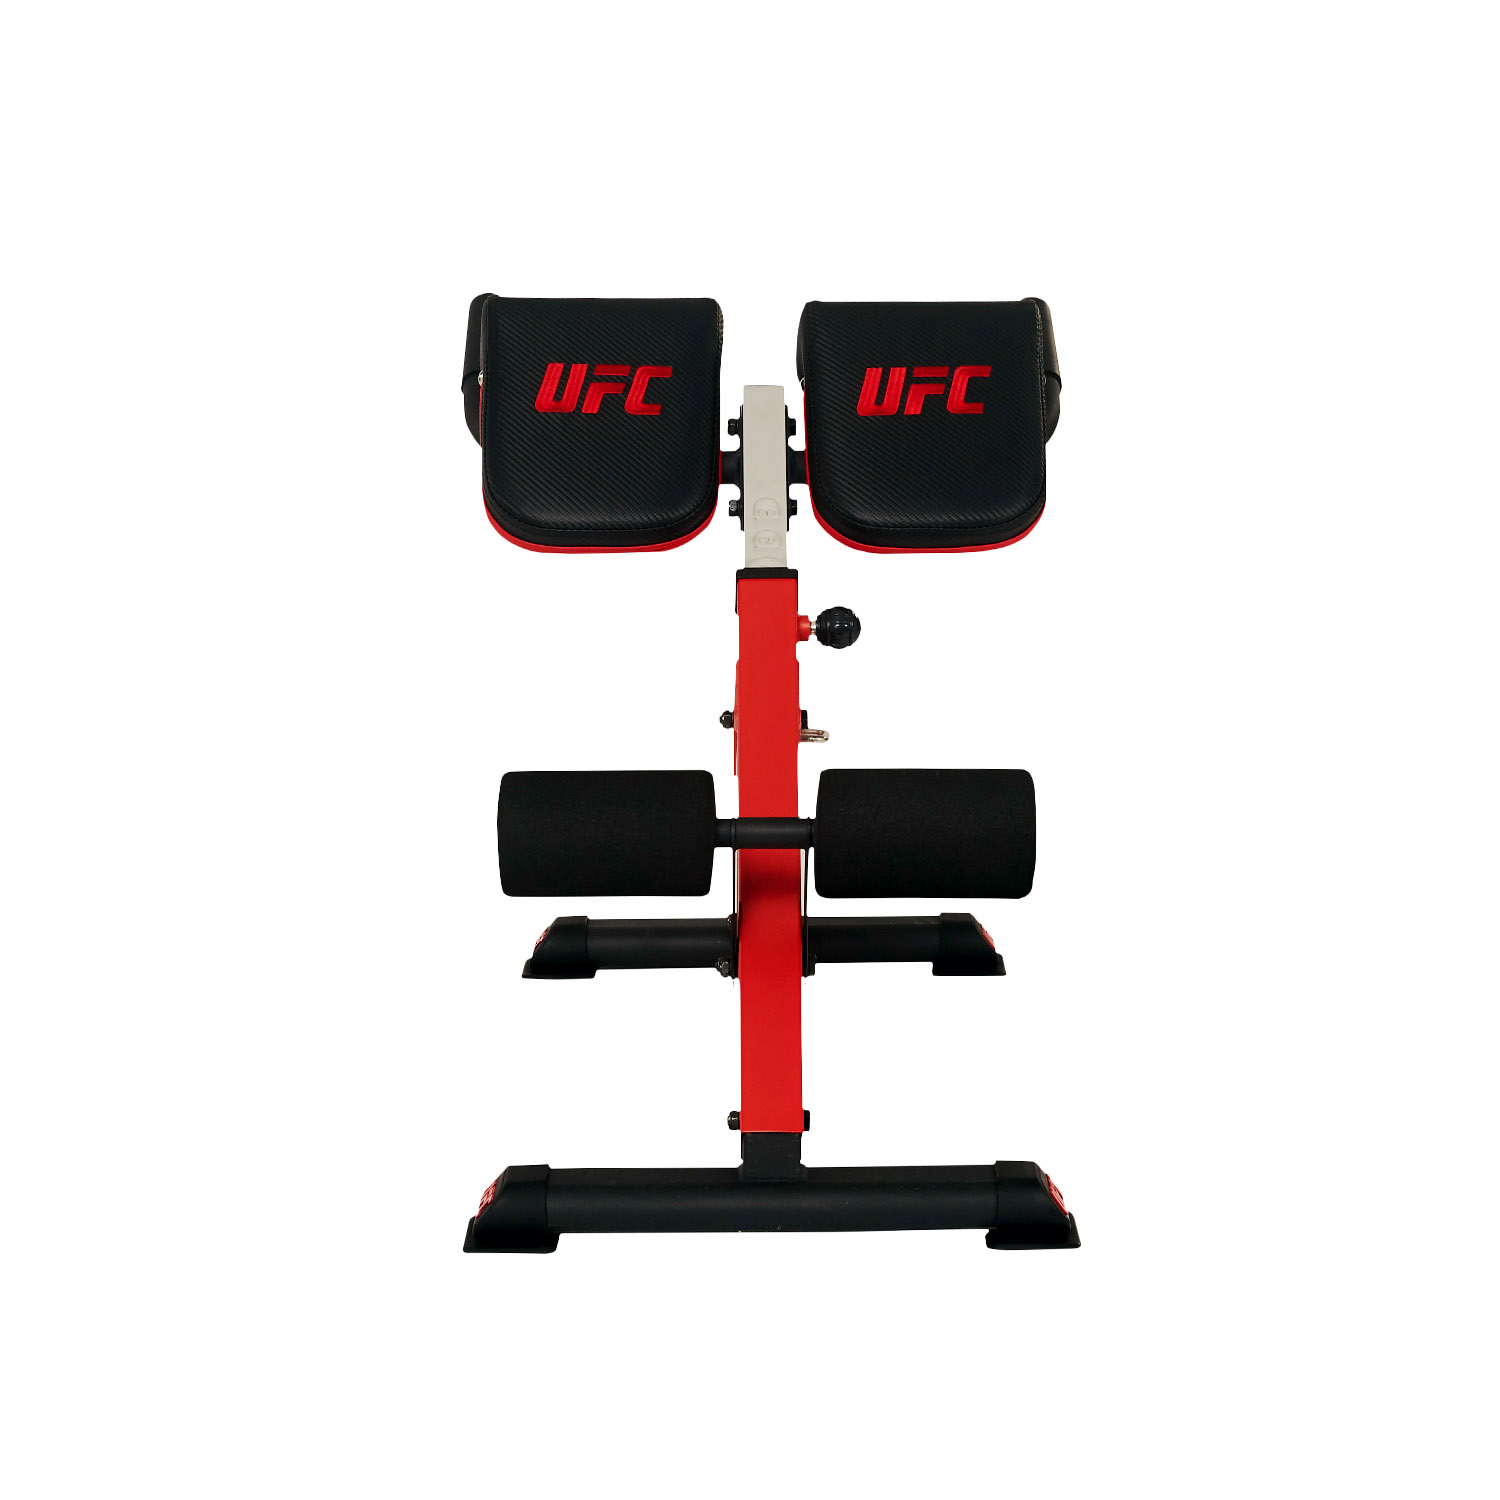 home benches45 Degree Hyper Extension_-3